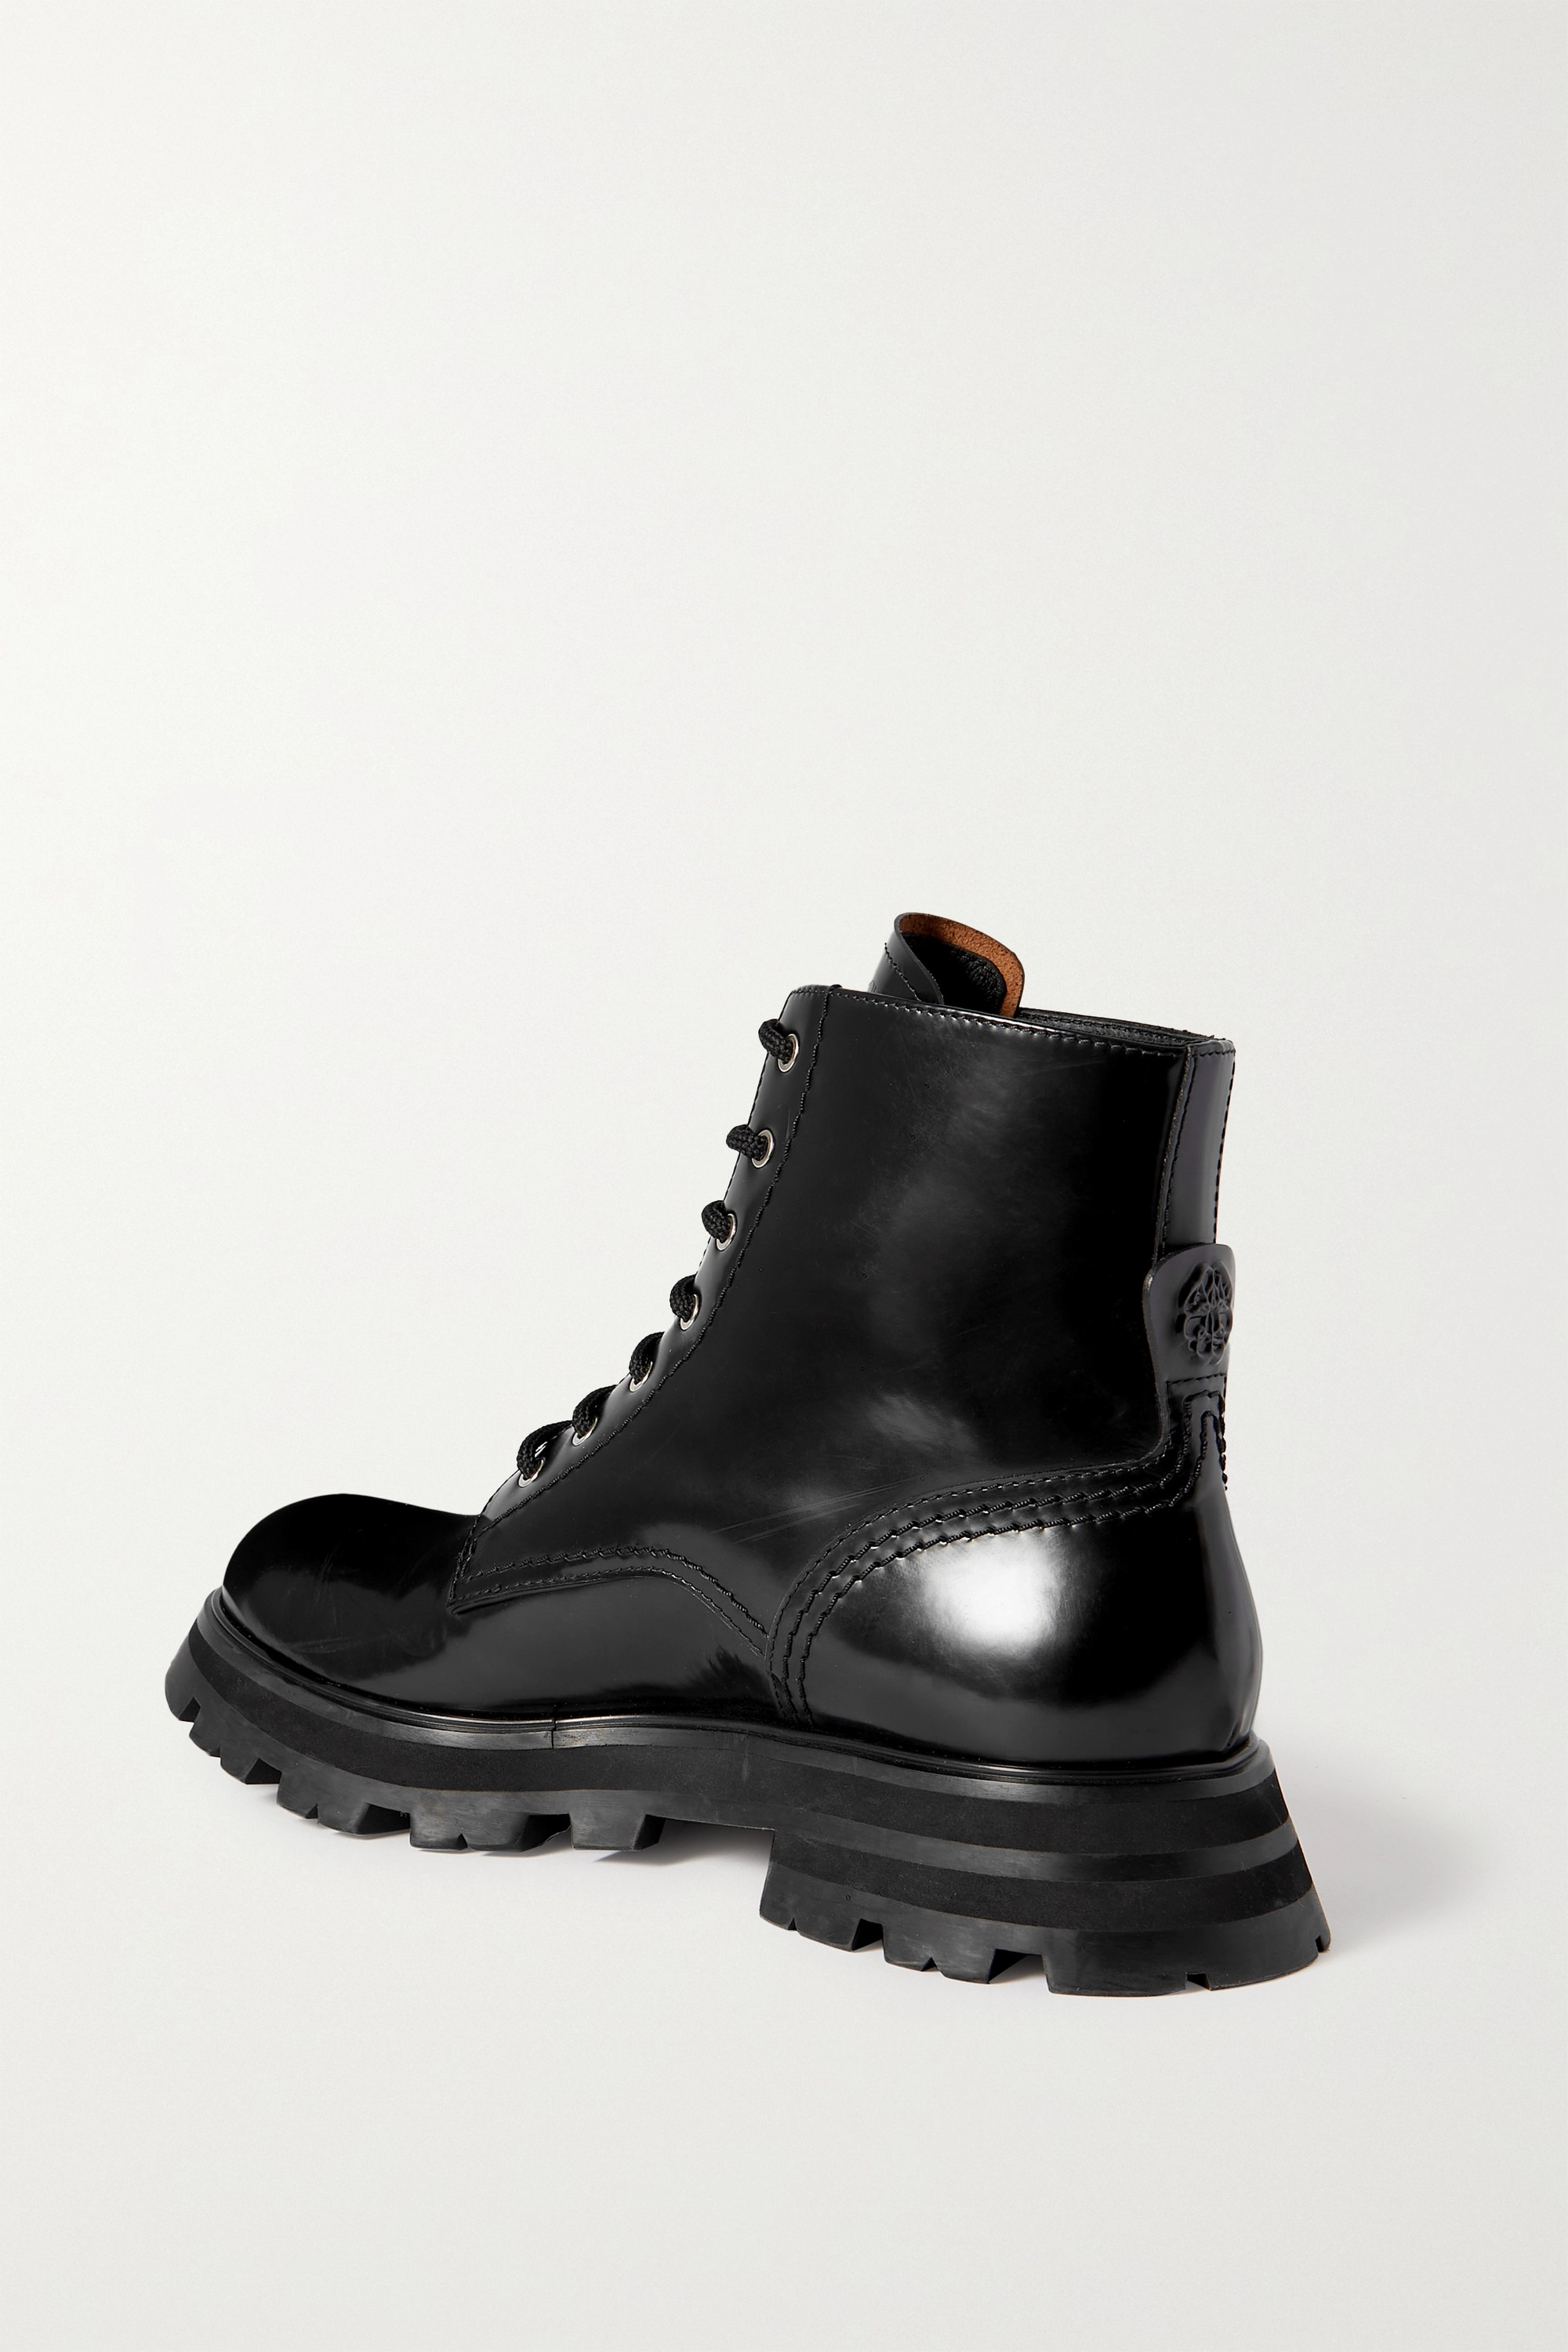 ALEXANDER MCQUEEN Wander glossed-leather exaggerated-sole ankle boots